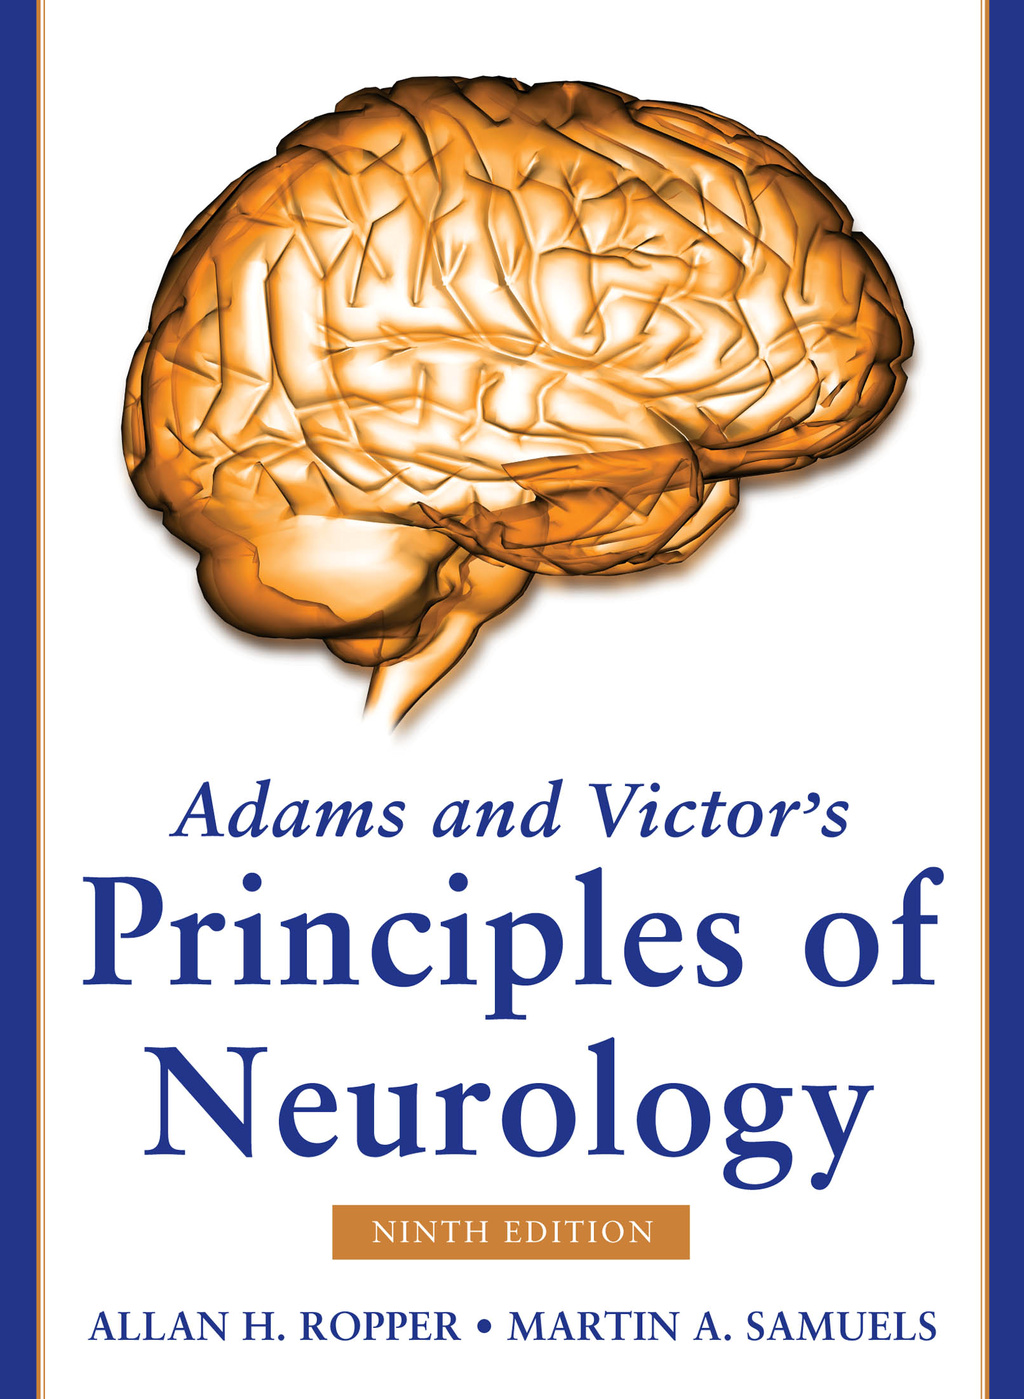 Adams and Victor's Principles of Neurology, Ninth Edition Eb